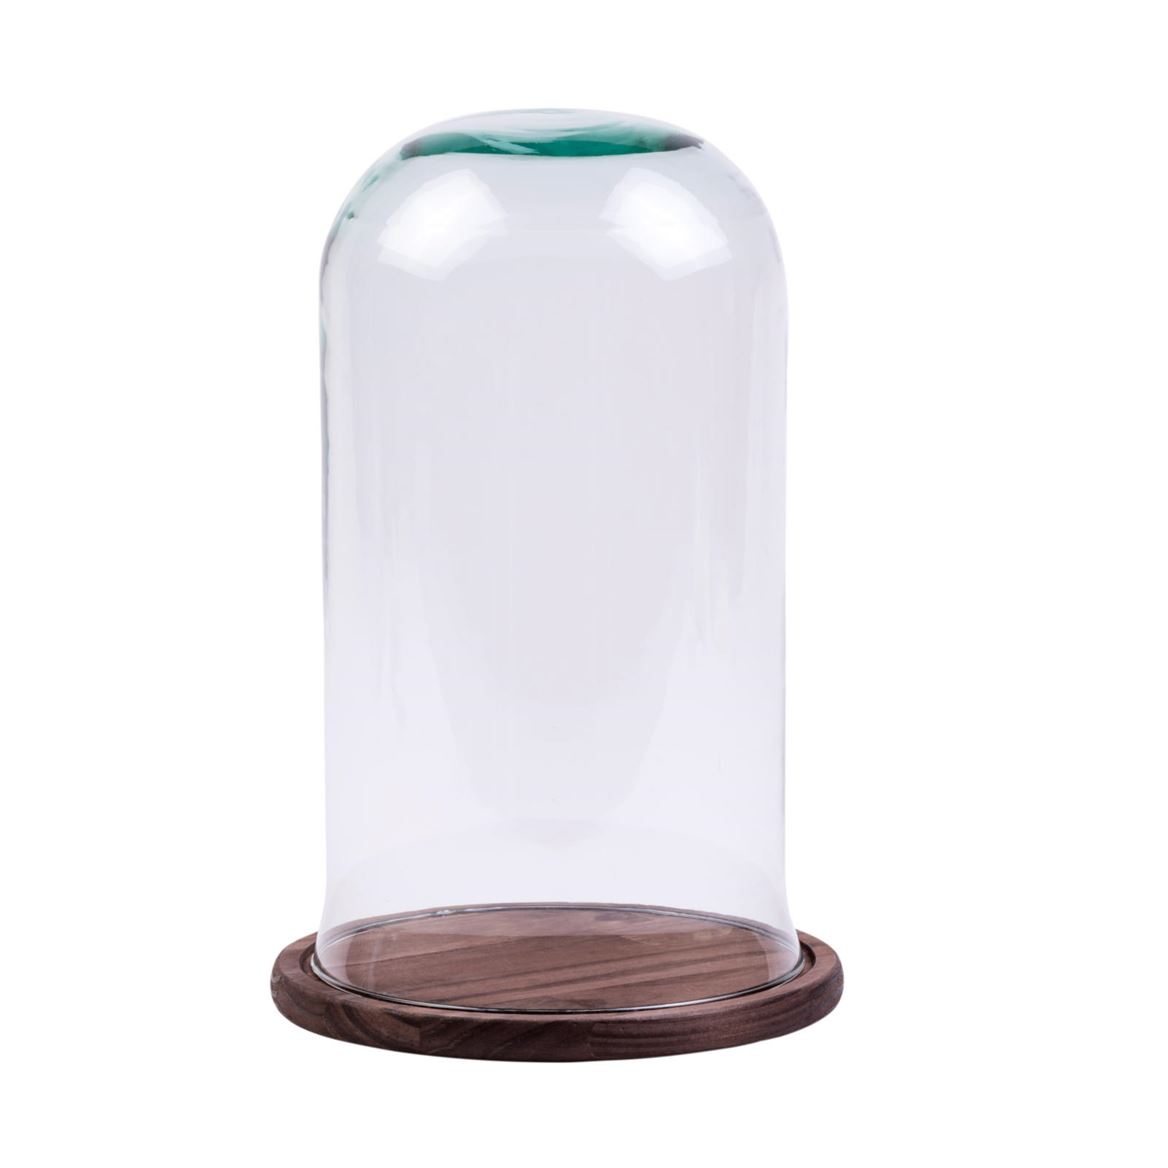 NATURAL Cloche transparent H 39 cm; Ø 22 cm_natural-cloche-transparent-h-39-cm;-ø-22-cm